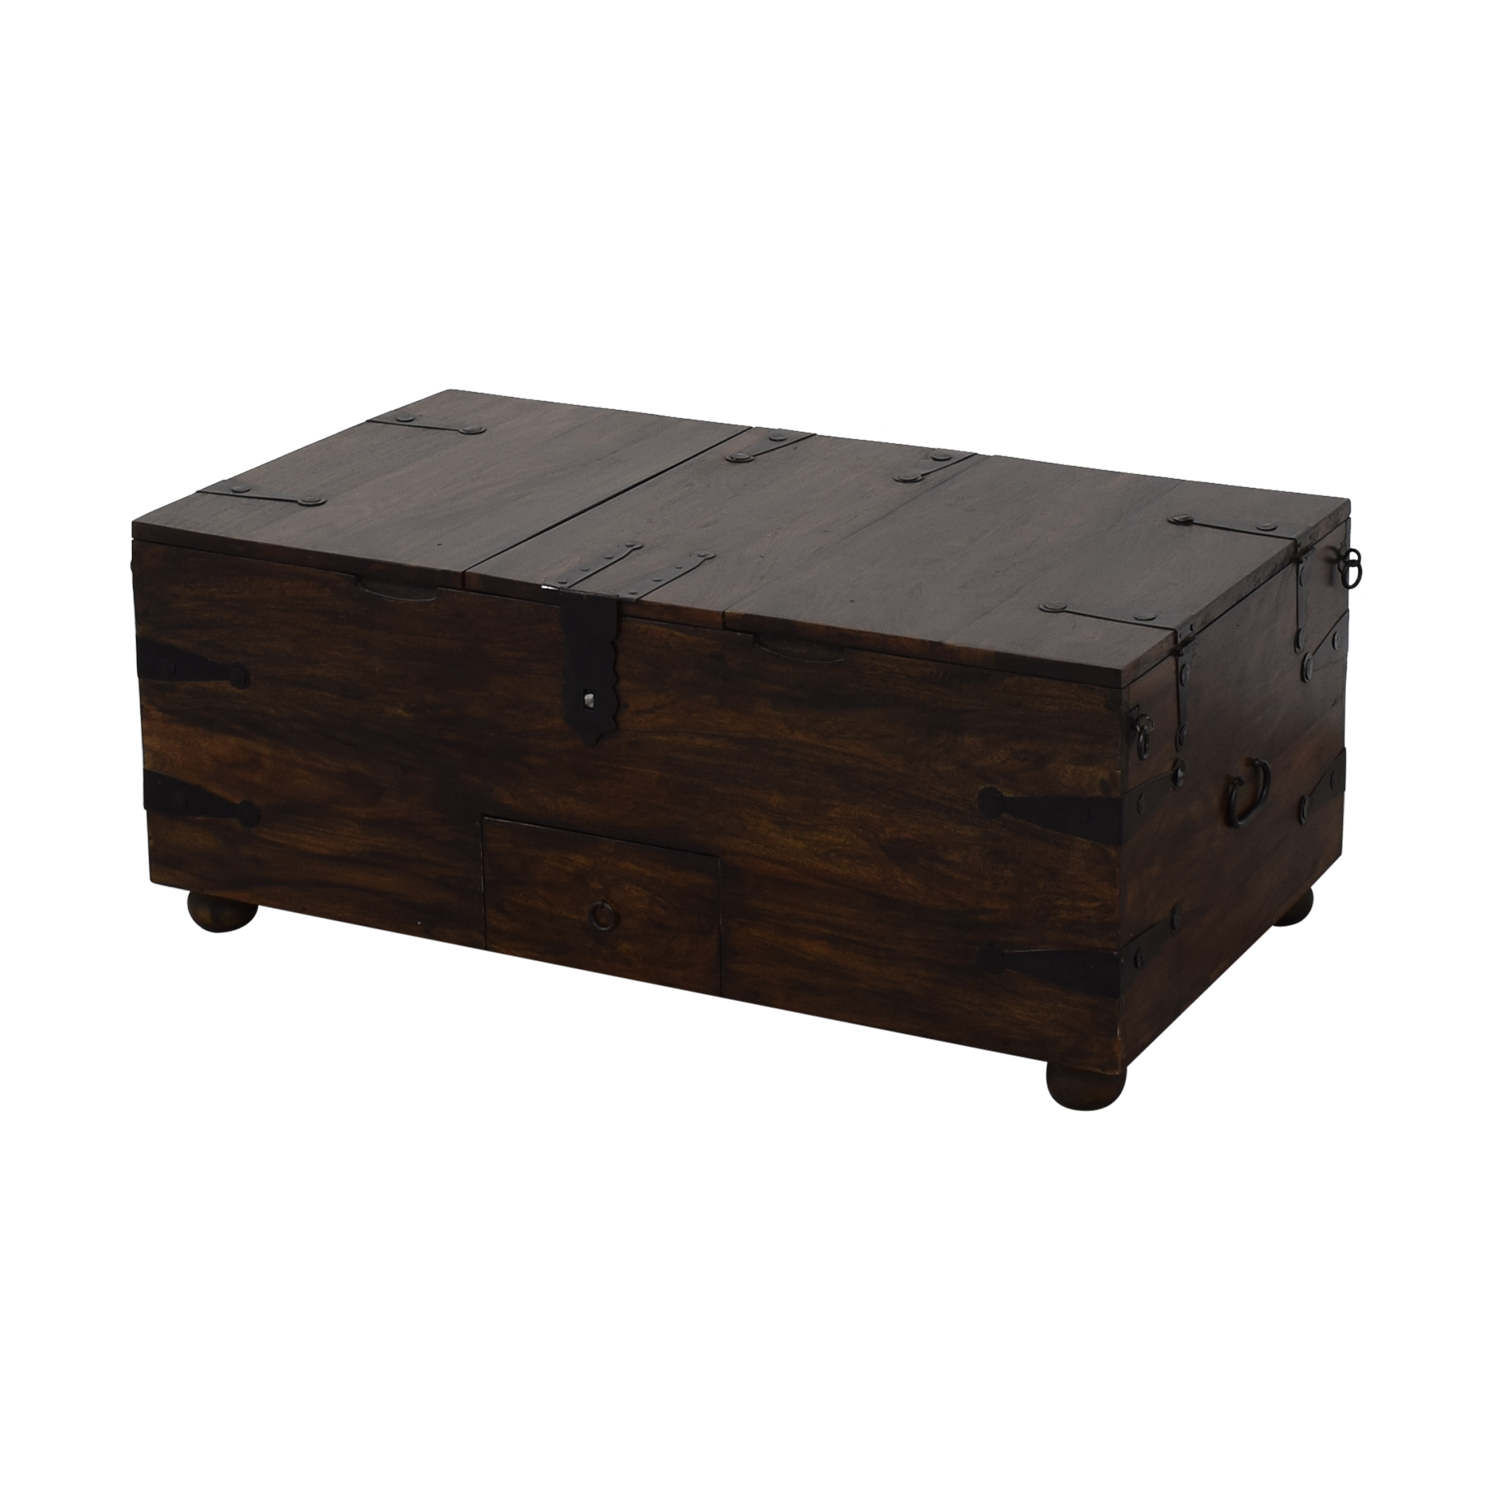 Crate & Barrel Crate & Barrel Rectangular Trunk or Coffee Table discount